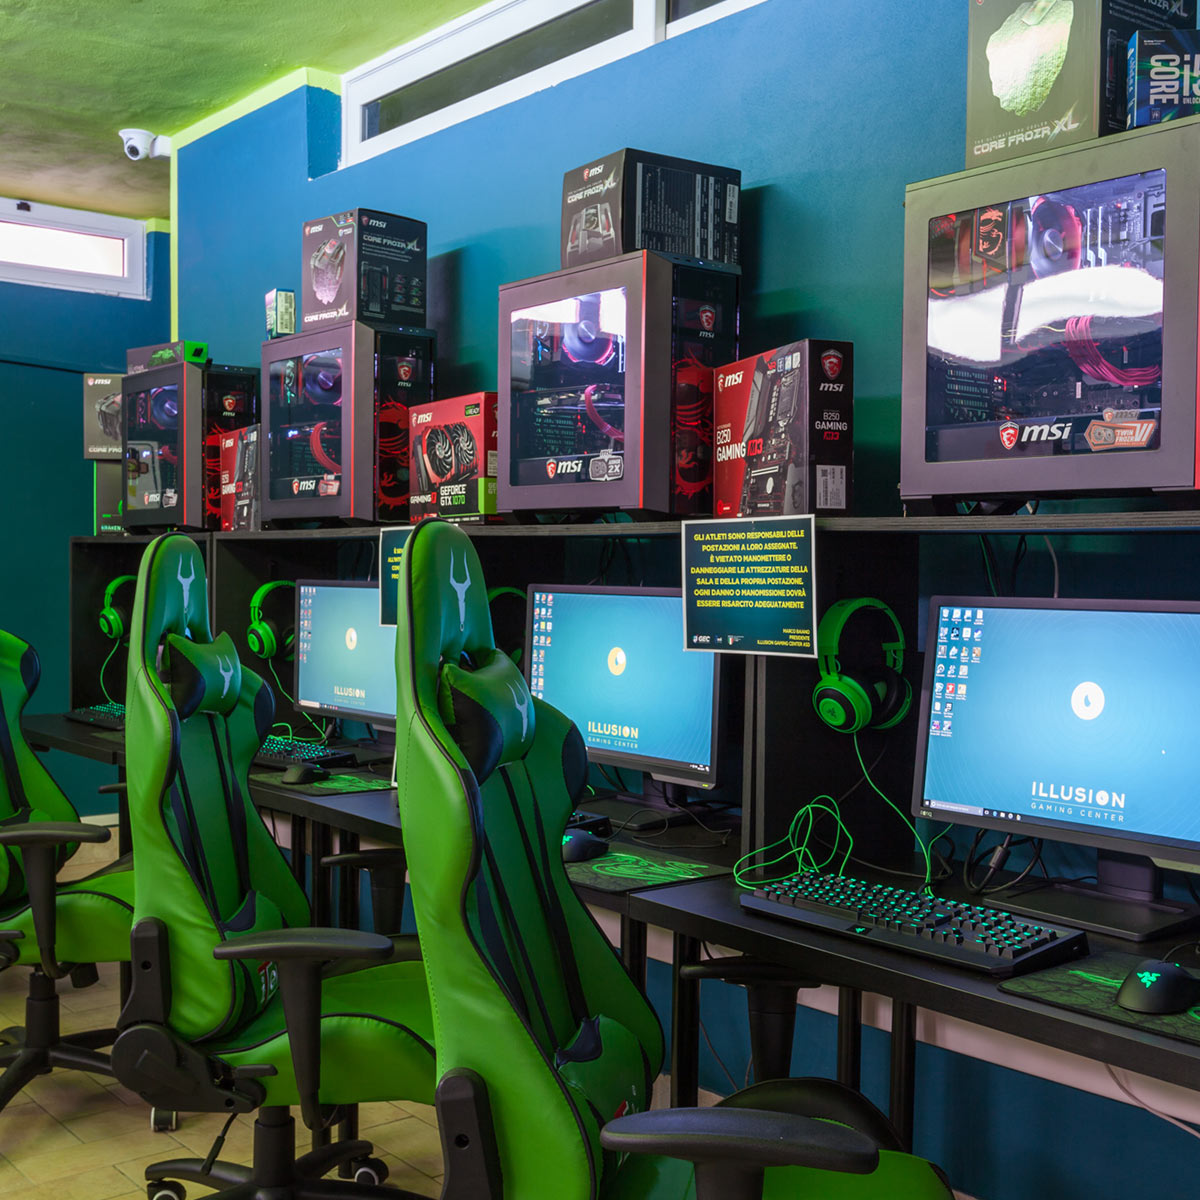 Illusion Gaming Center